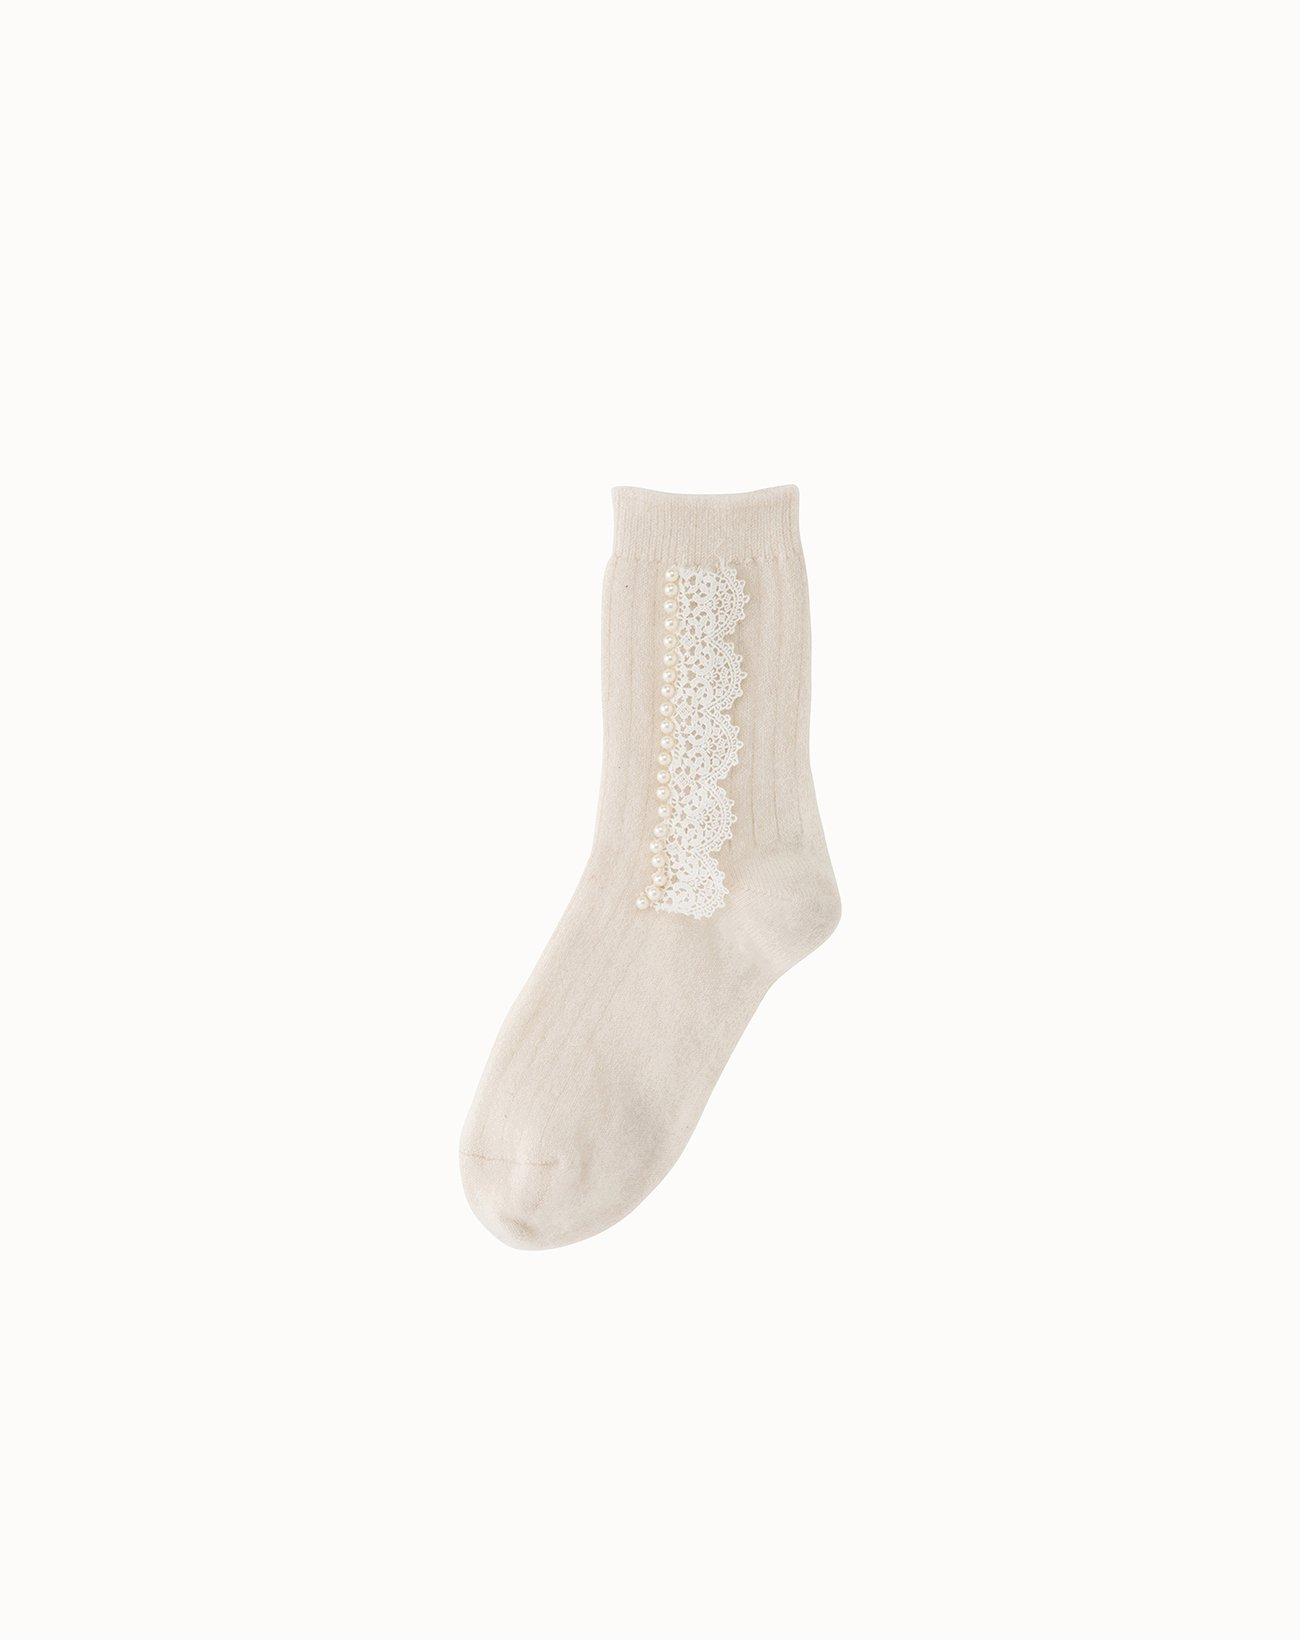 Cashmere Socks With Lace  - Off White